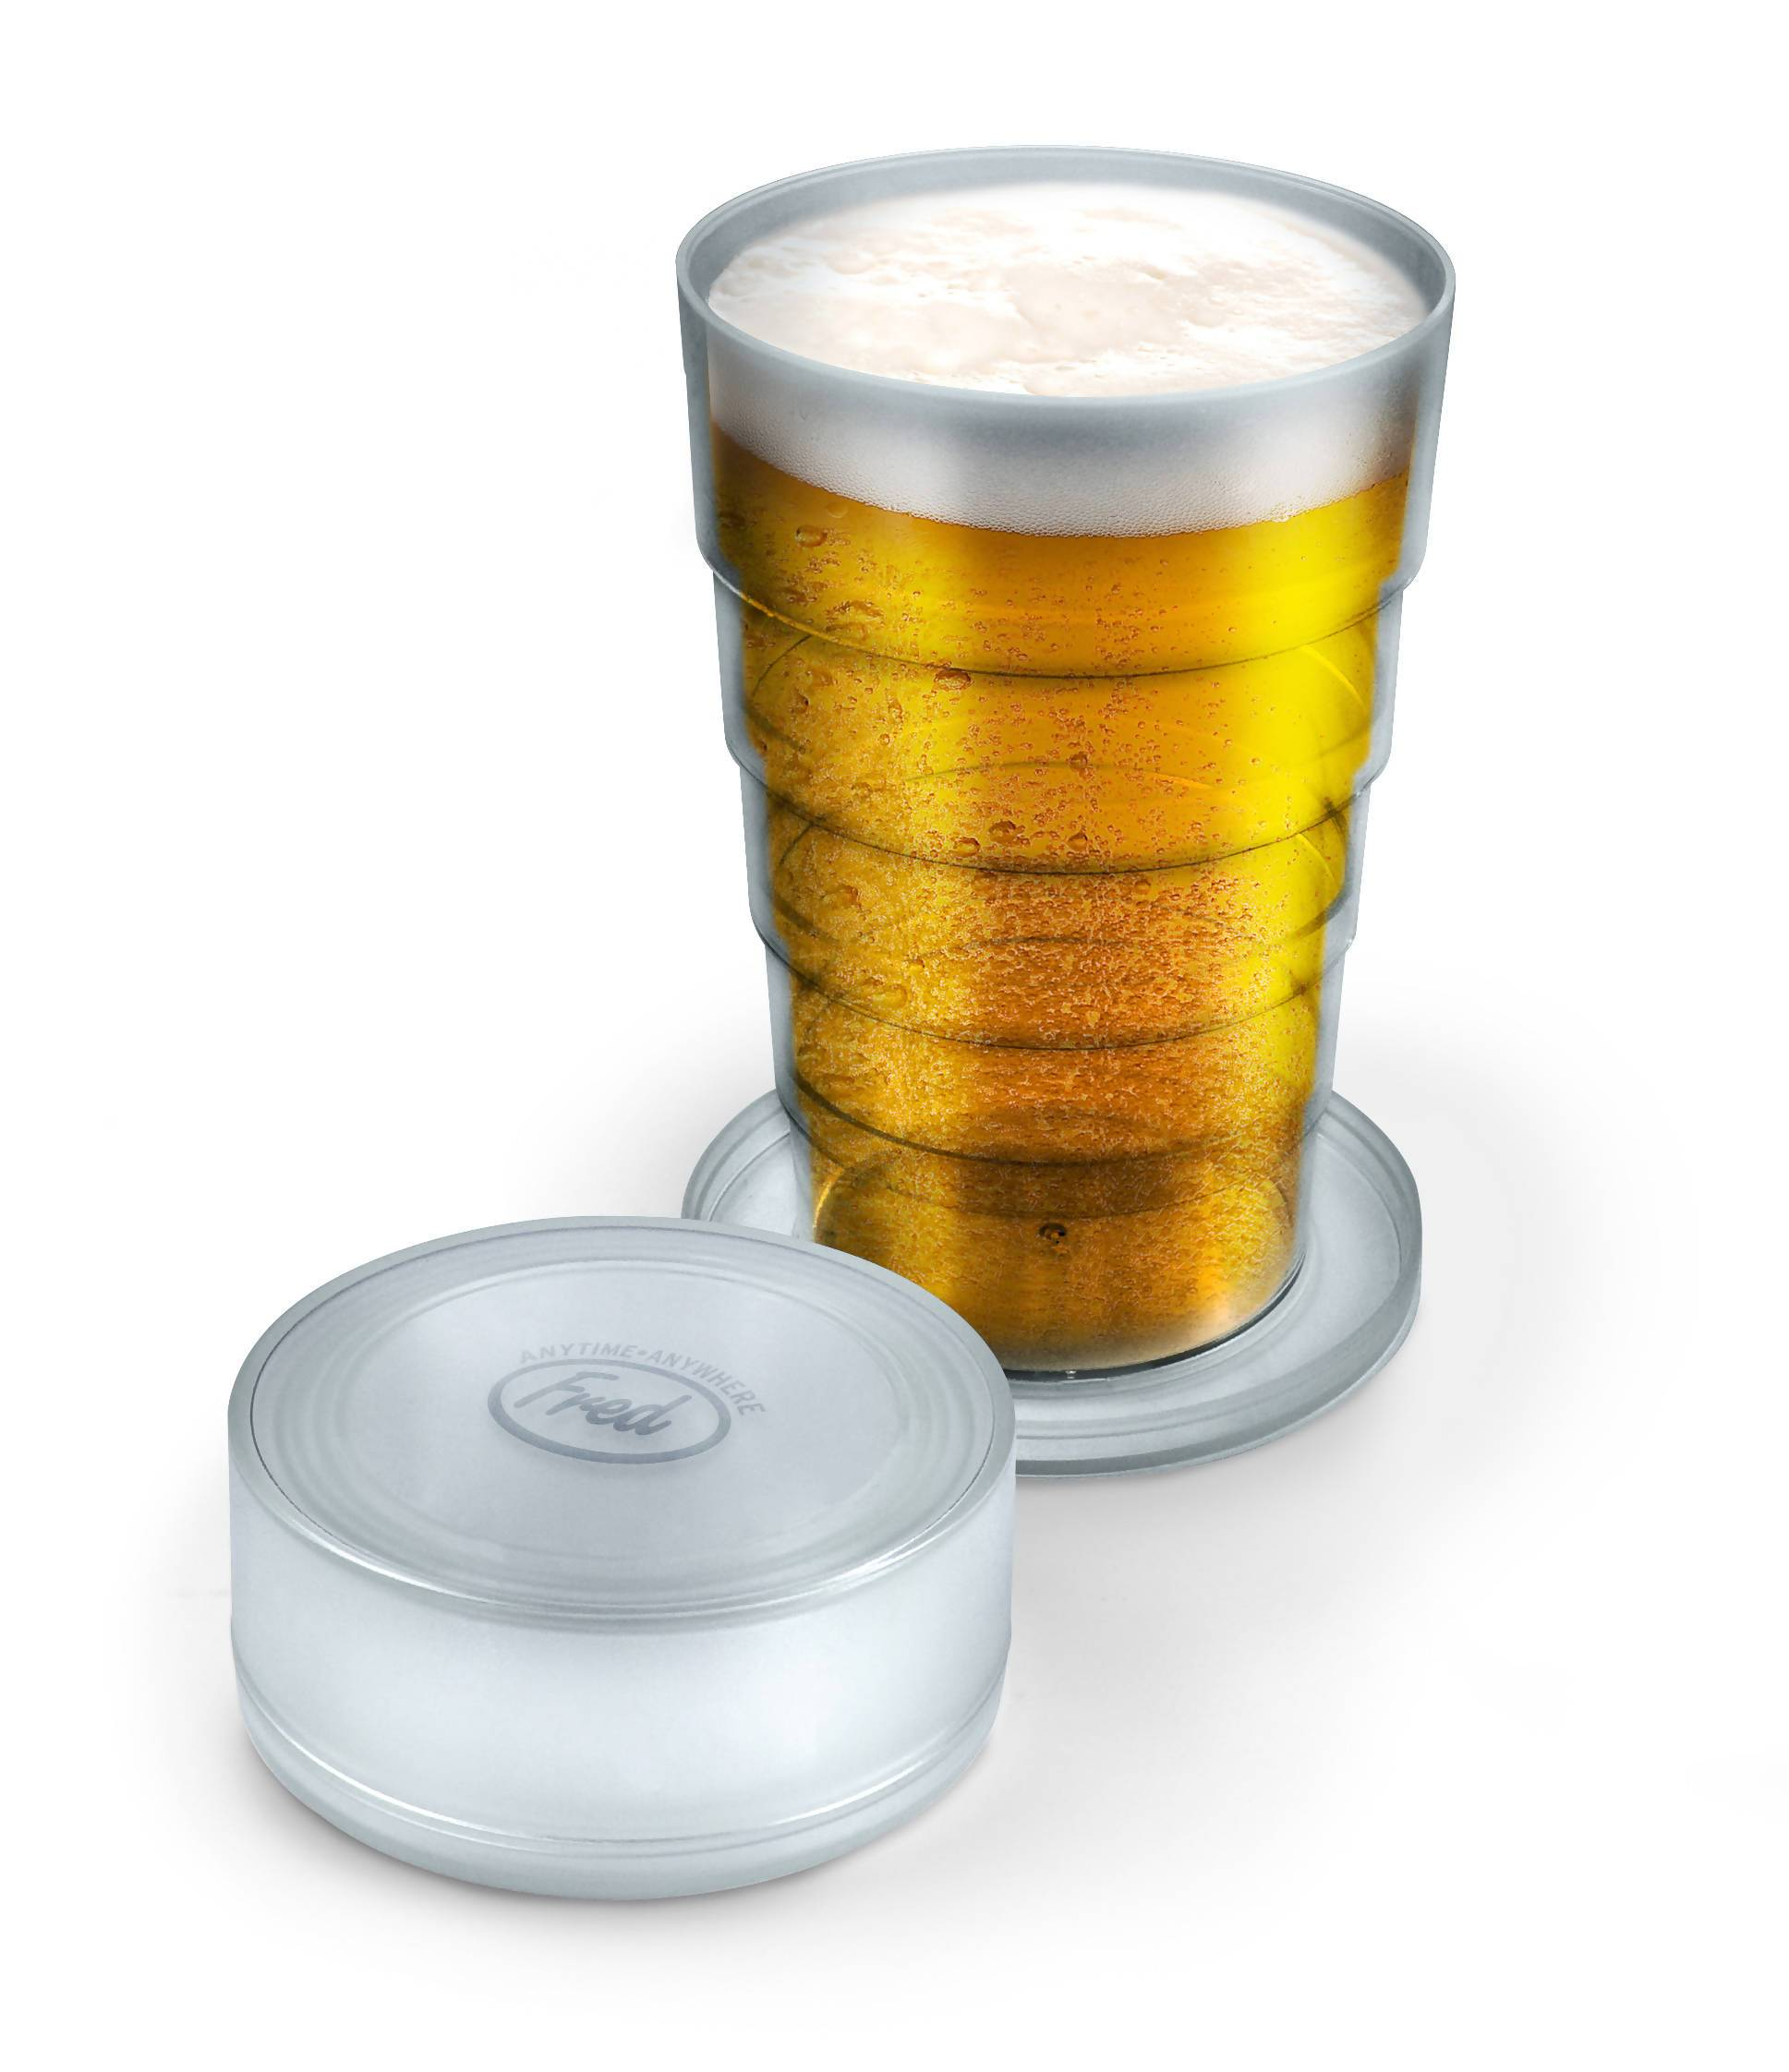 Fred Port A Pint Folding Beer Glass - Collapsible Cups - The Planet Collection - Naiise